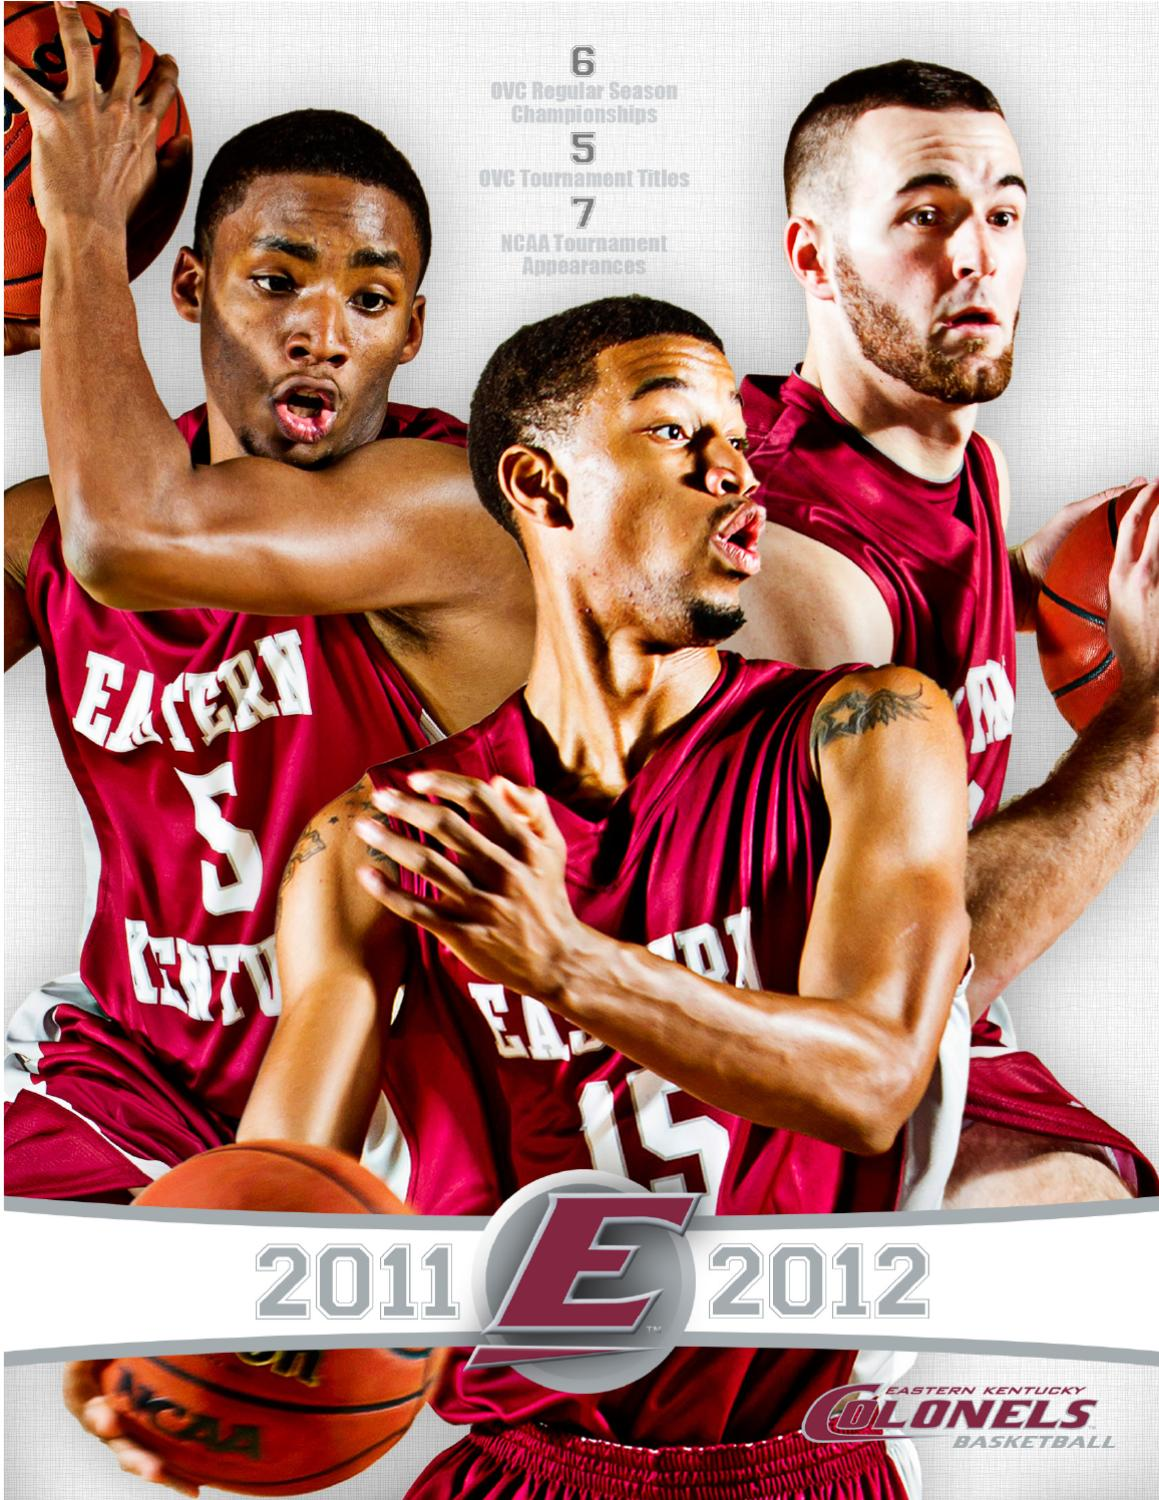 6491bc689073 2011-12 EKU Men s Basketball Media Guide by EKU Sports - issuu